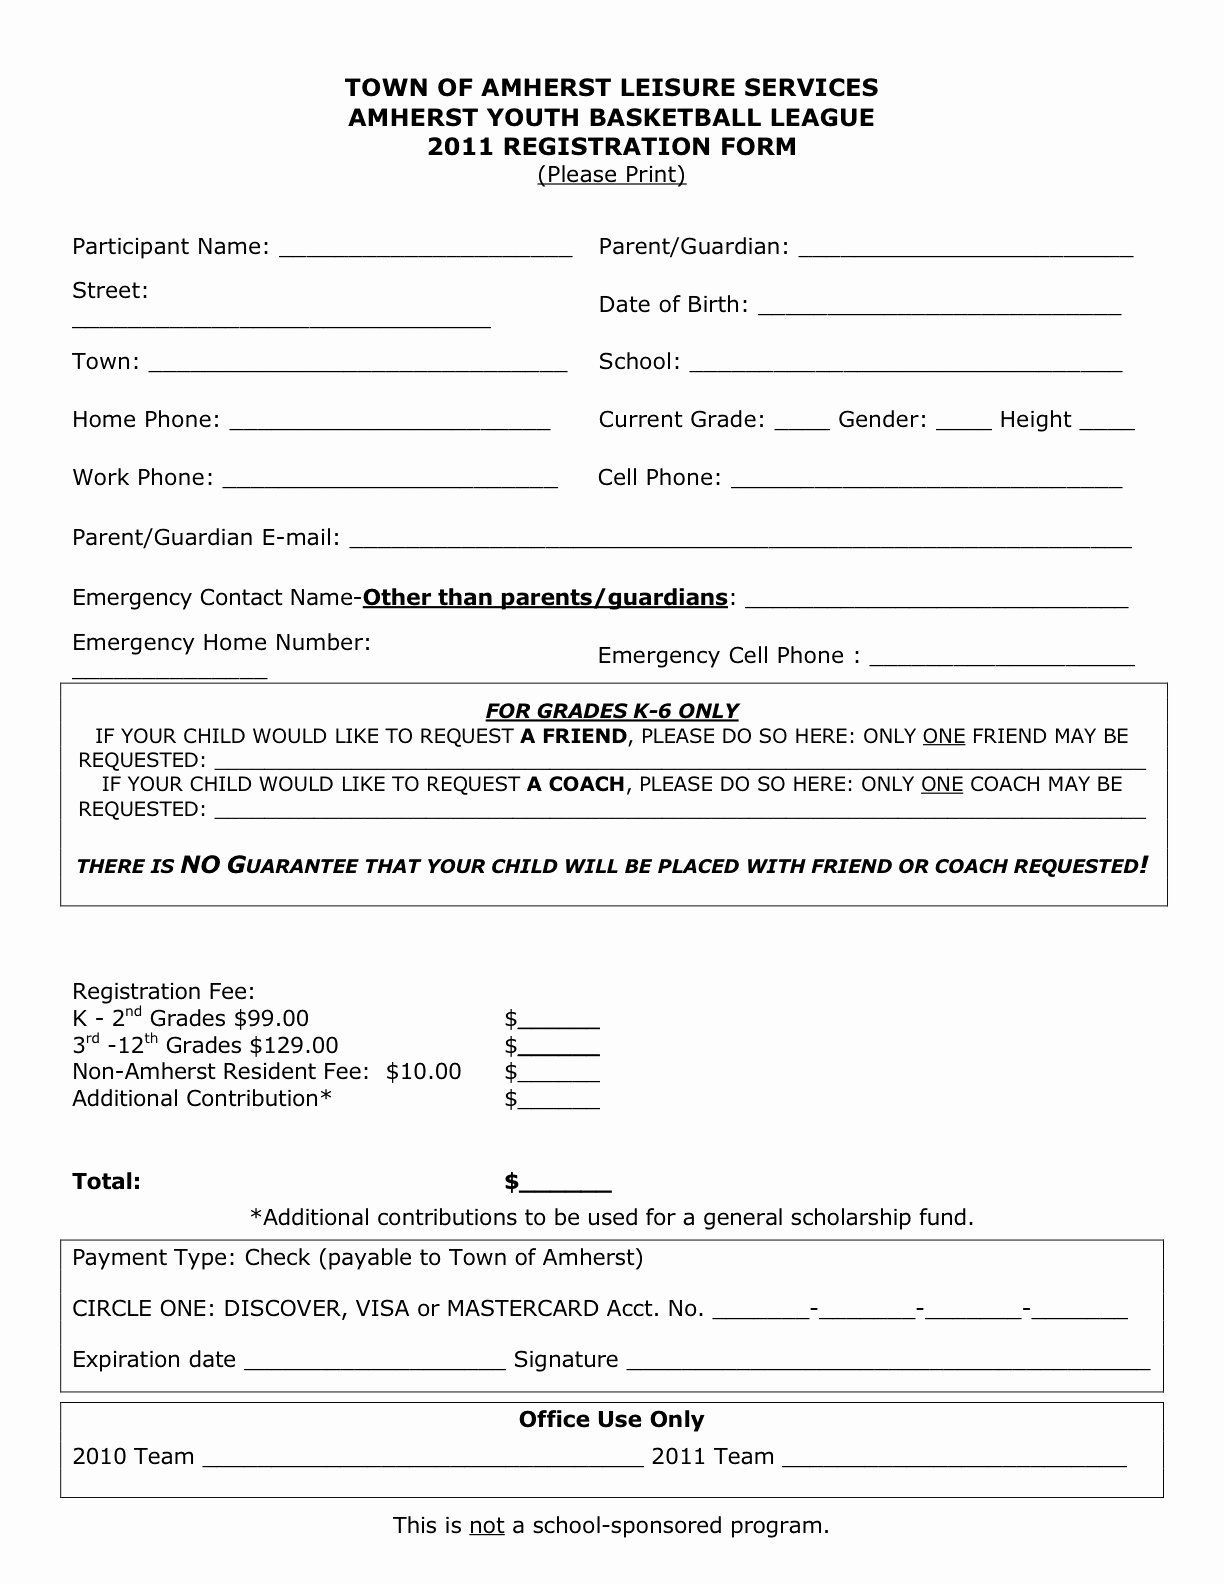 003 Imposing Registration Form Template Free Download High Definition  Bootstrap Student W3layout In PhpFull